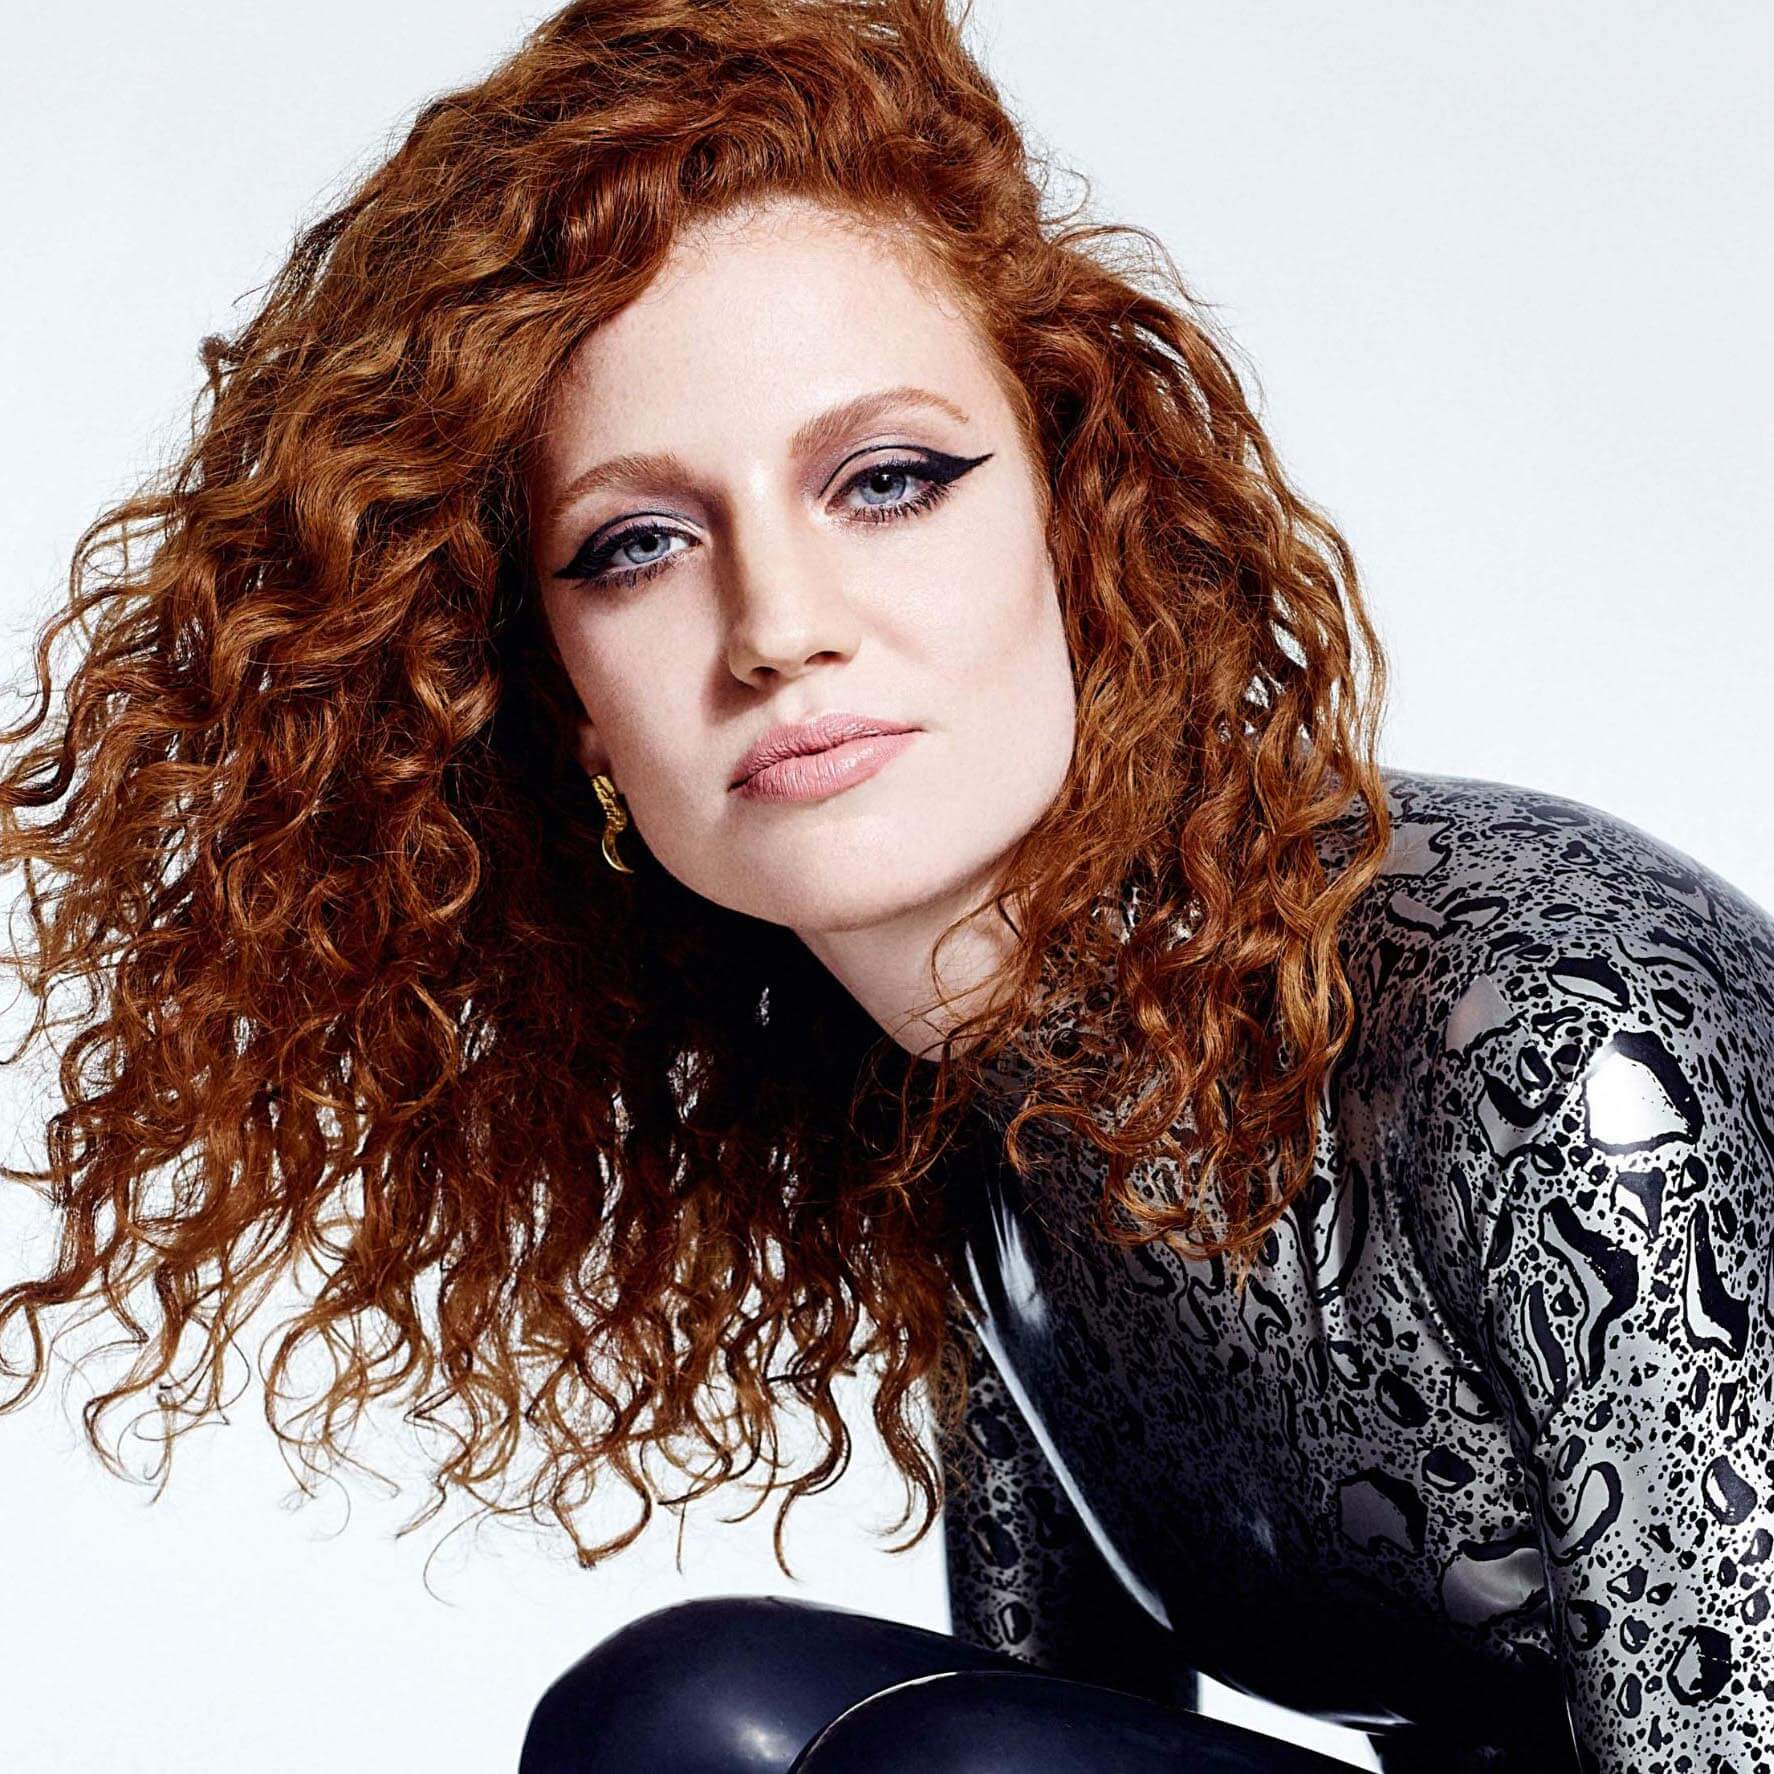 Images Jess Glynne nudes (46 foto and video), Tits, Leaked, Selfie, panties 2015